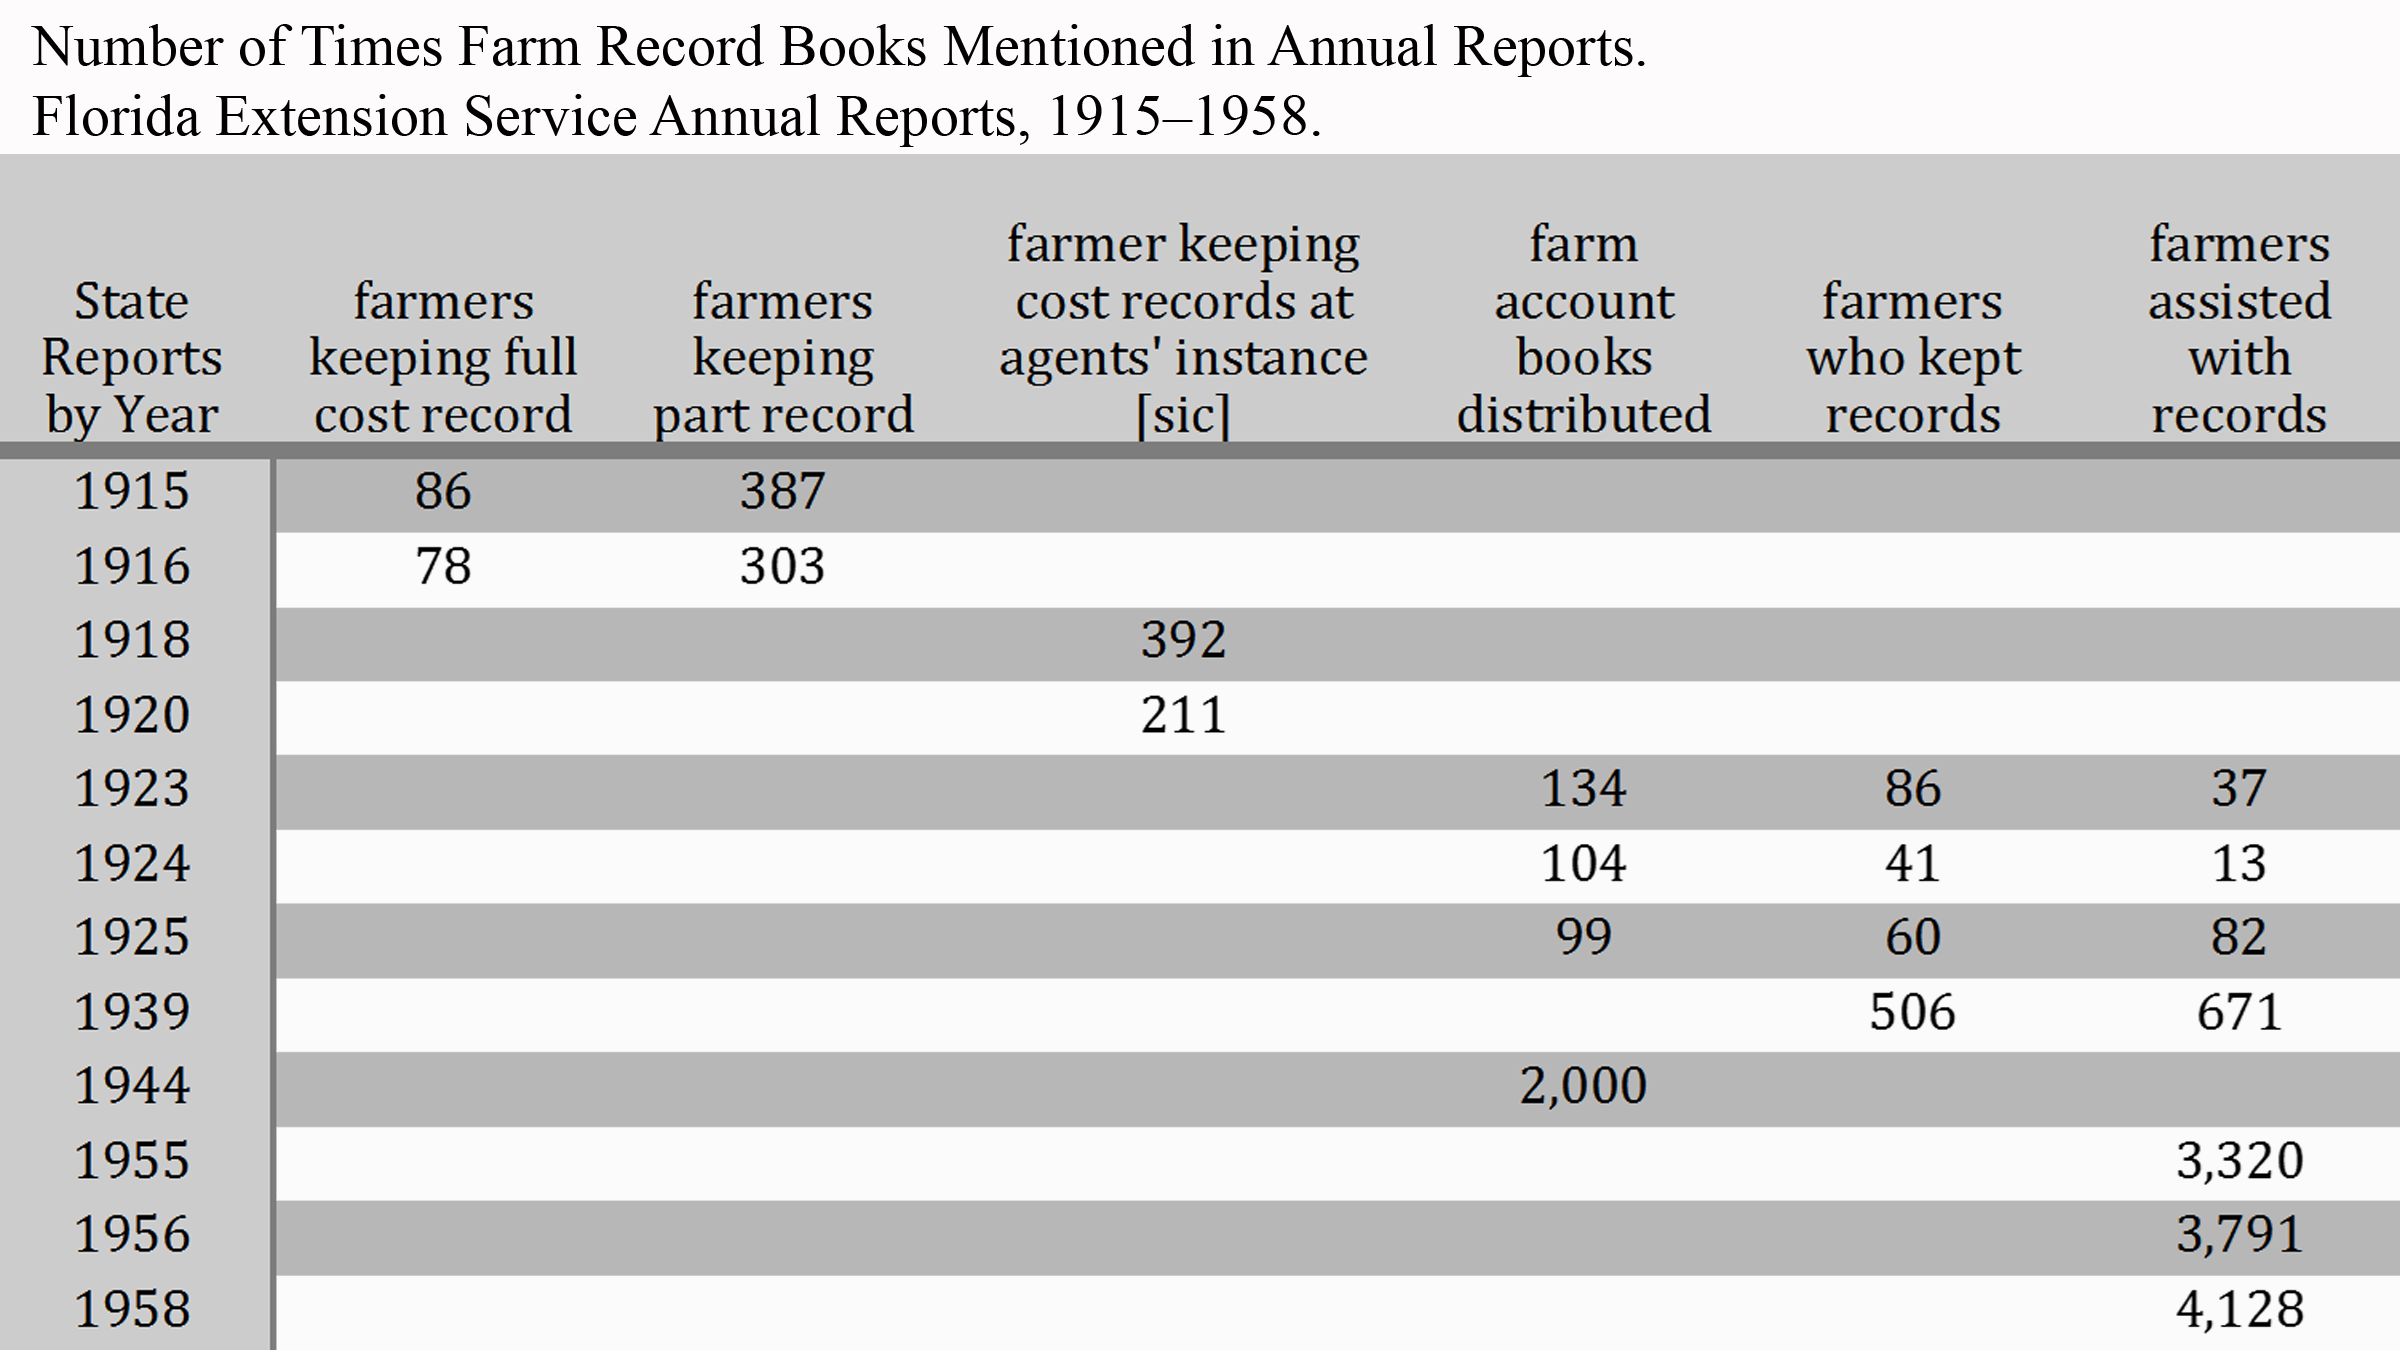 A table showing the number of times farm record books were mentioned in Flordia state reports fomr 1915 until 1958 based on different catagories such as farmers keeping full records, partial records or only assisting with records.